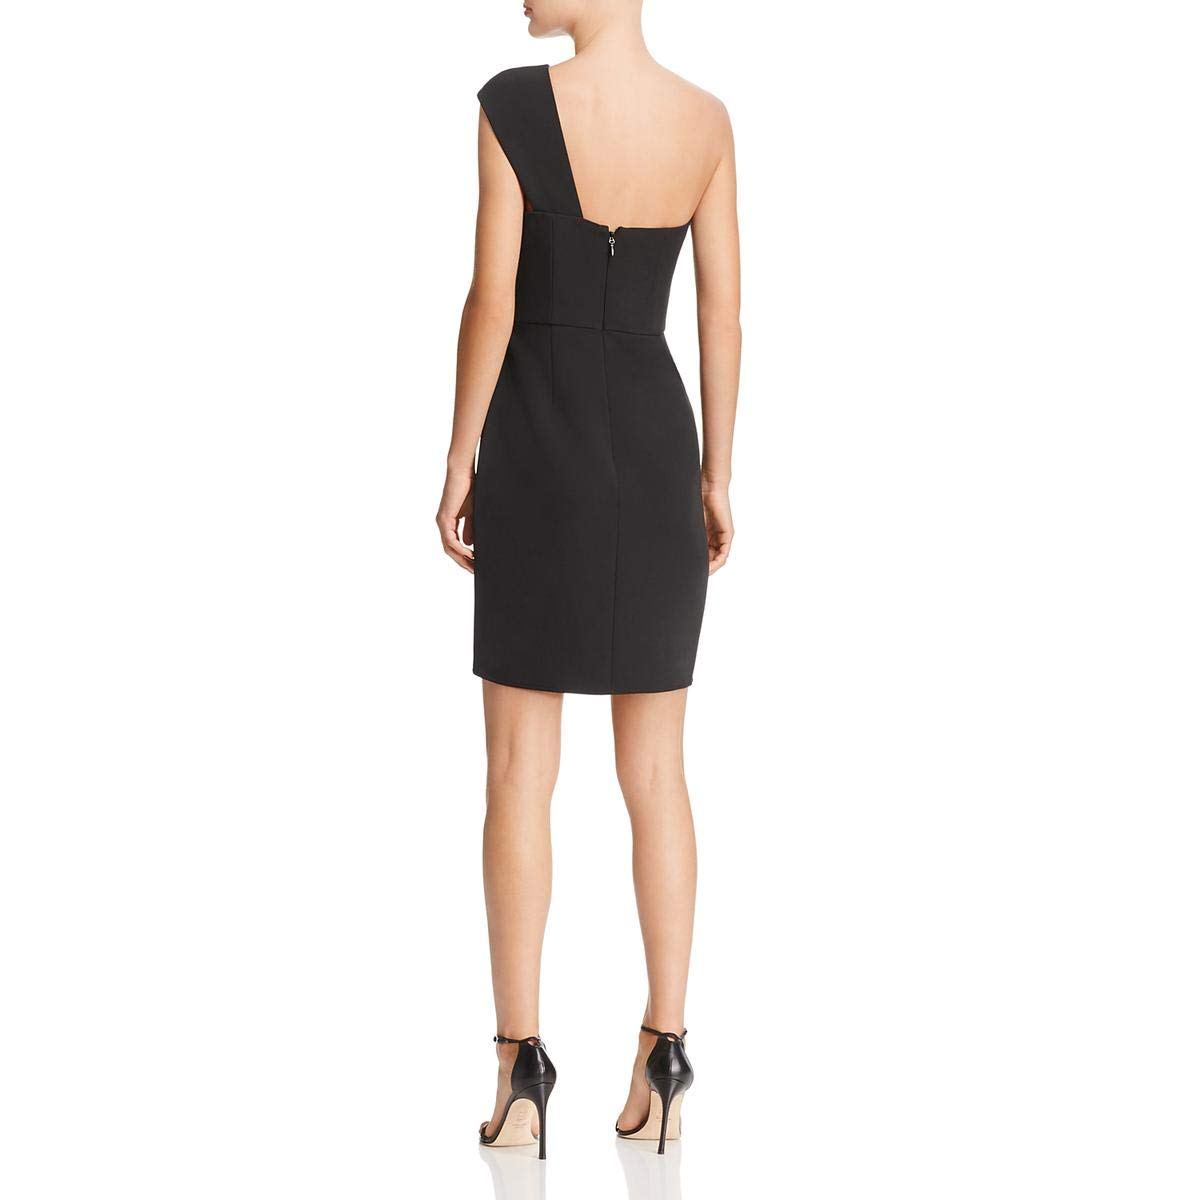 56228c54262 Amazon.com  BCBG Max Azria Womens Aryanna One-Shoulder Mini Cocktail Dress   Clothing